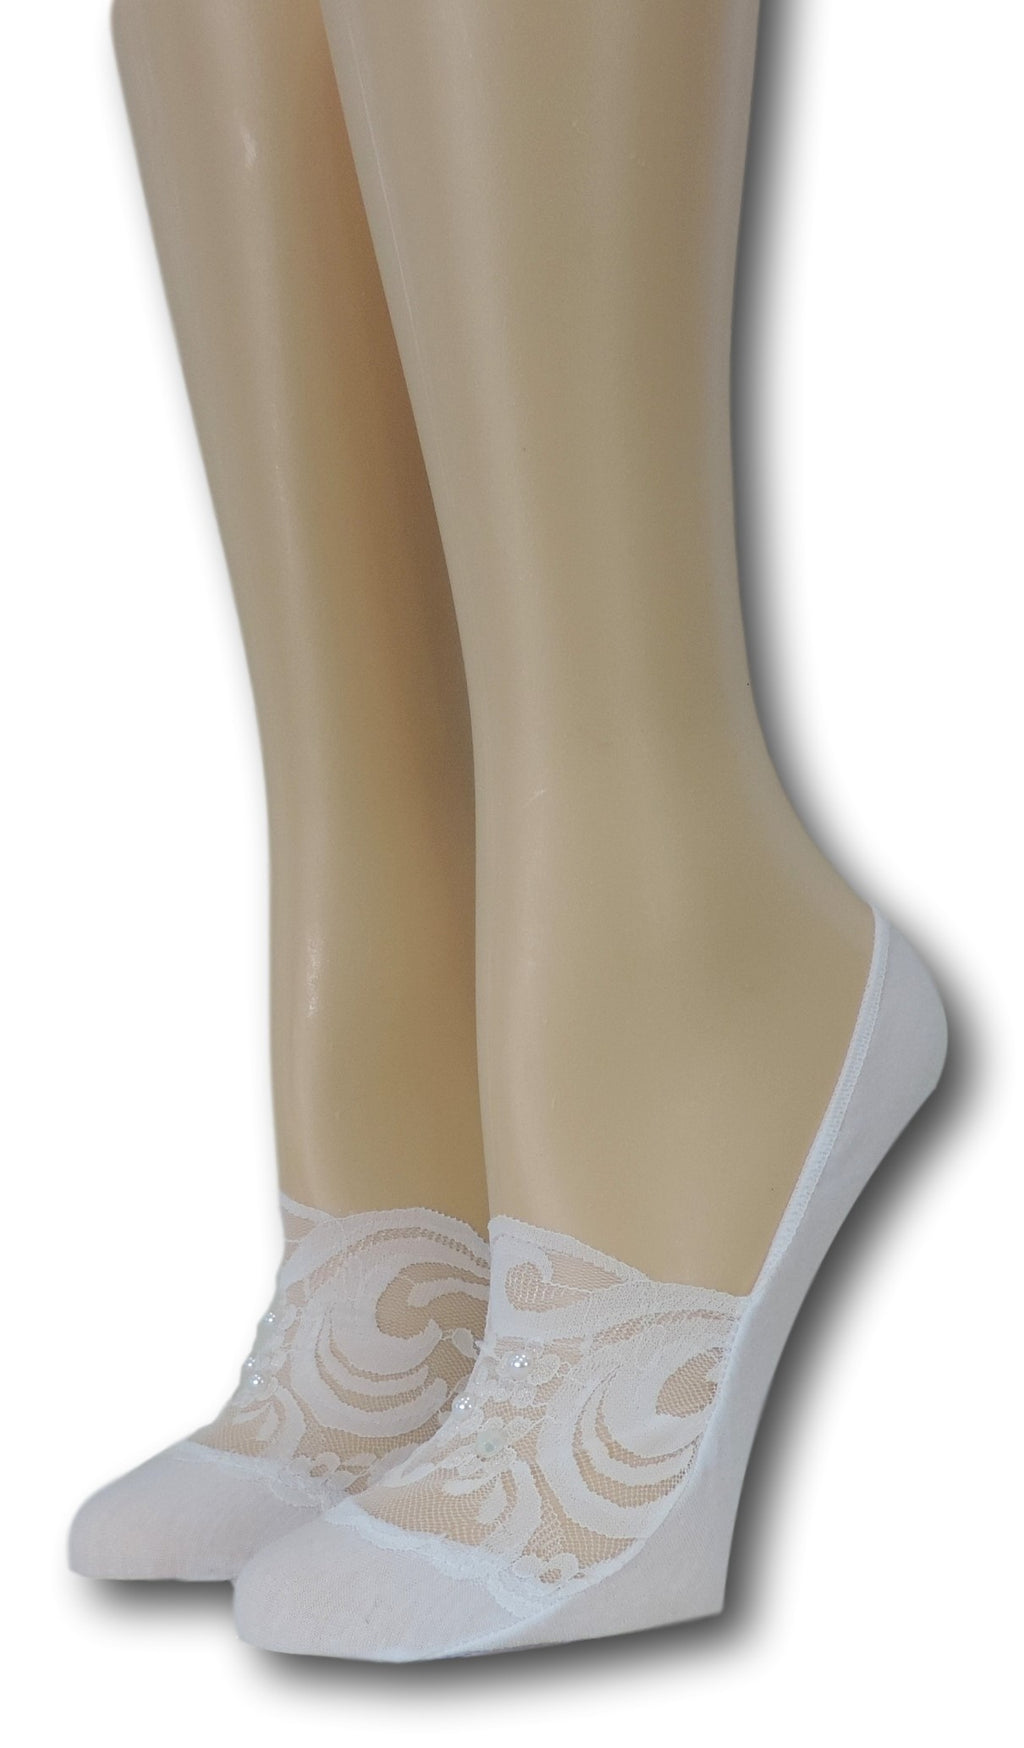 Exotic White No Show Sheer Socks with beads